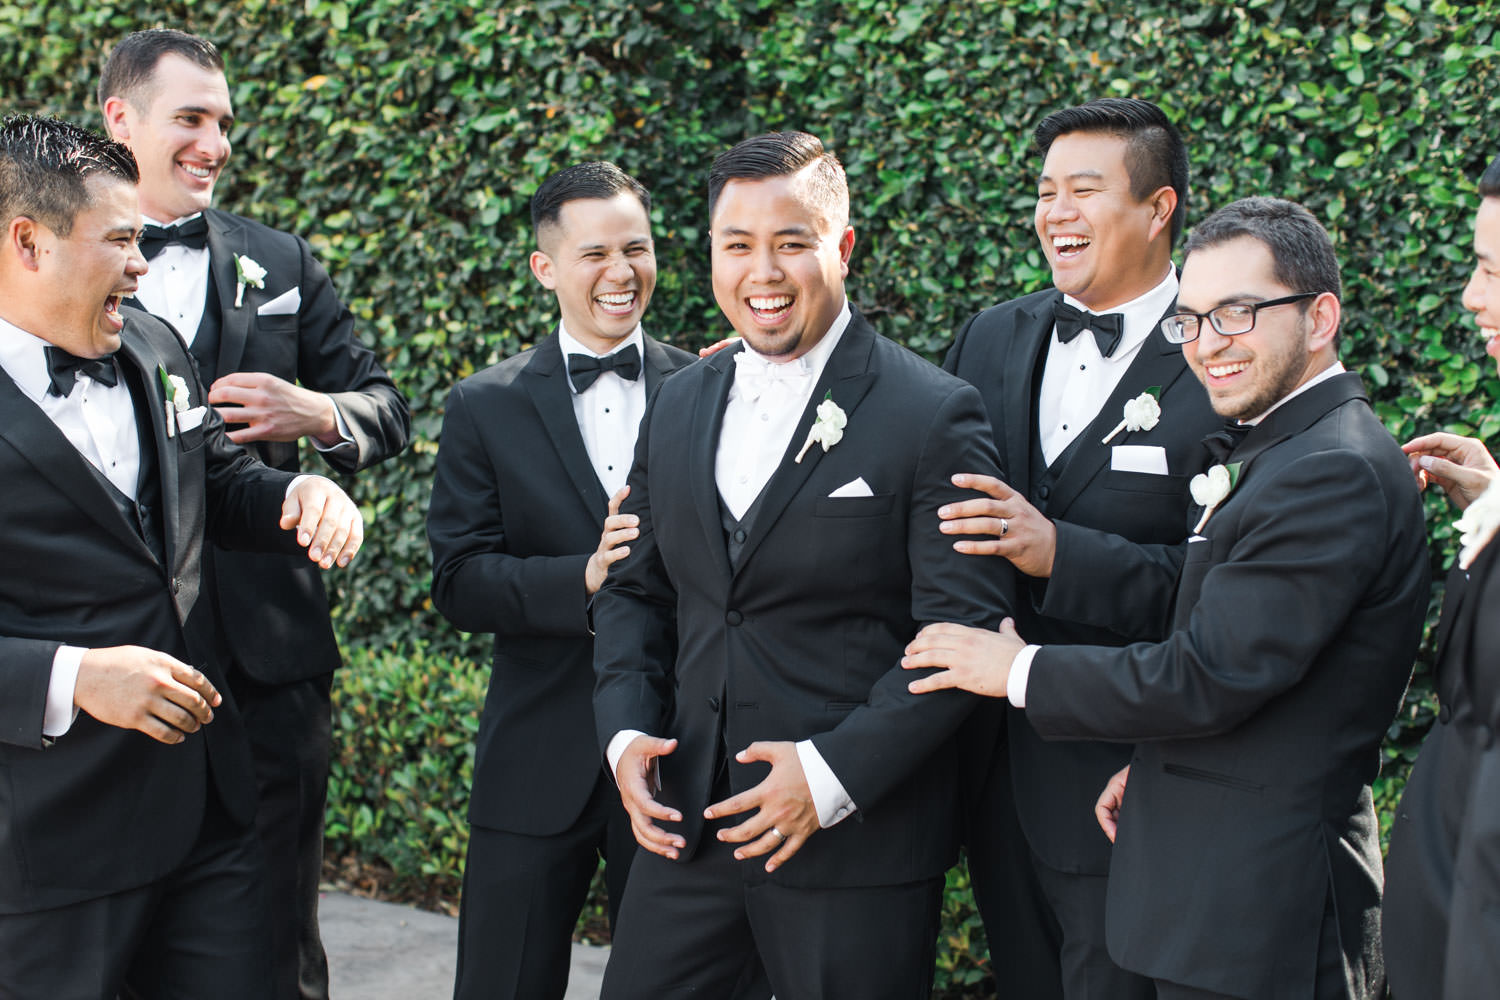 Groomsmen candid photo in front of ivy covered wall, Santalux Club wedding reception, Cavin Elizabeth Photography